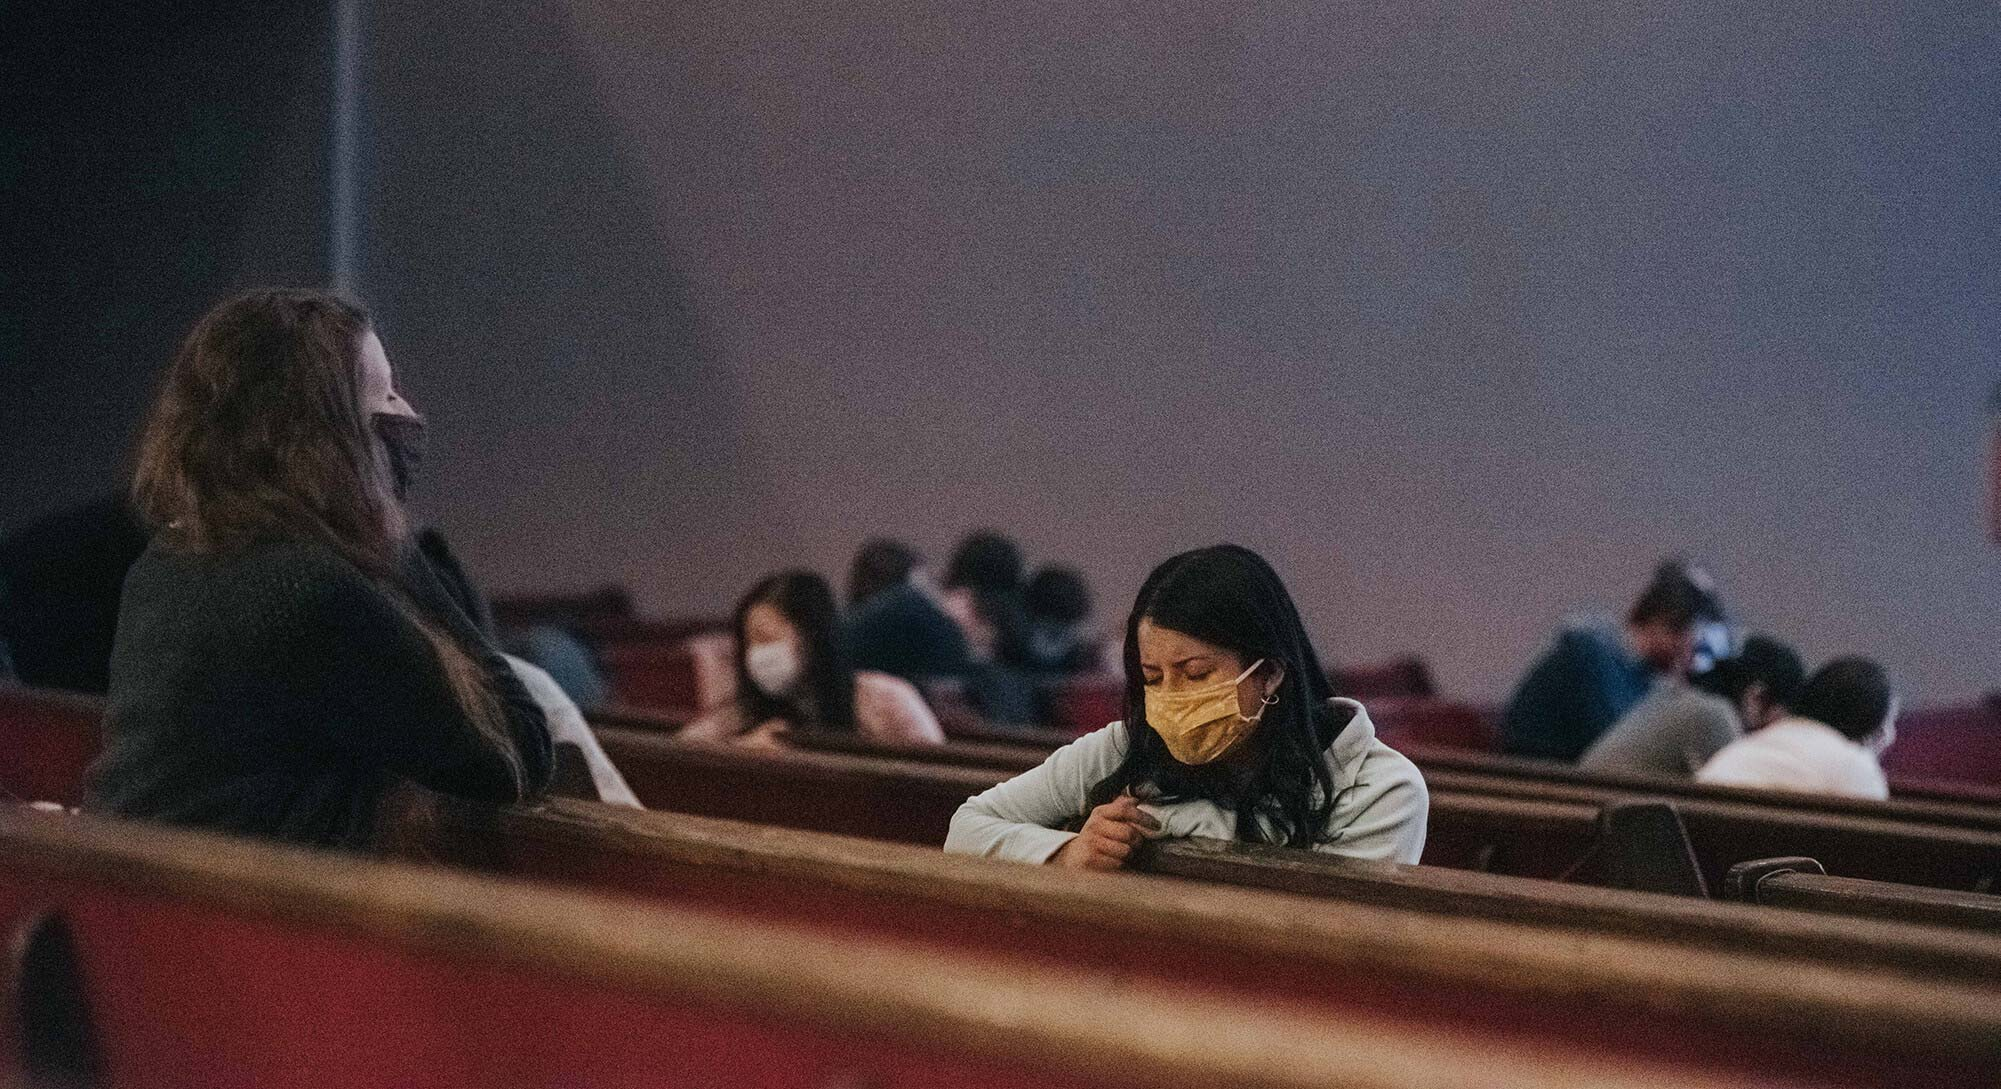 Coquitlam Alliance Church. Two masked women praying in a pew.